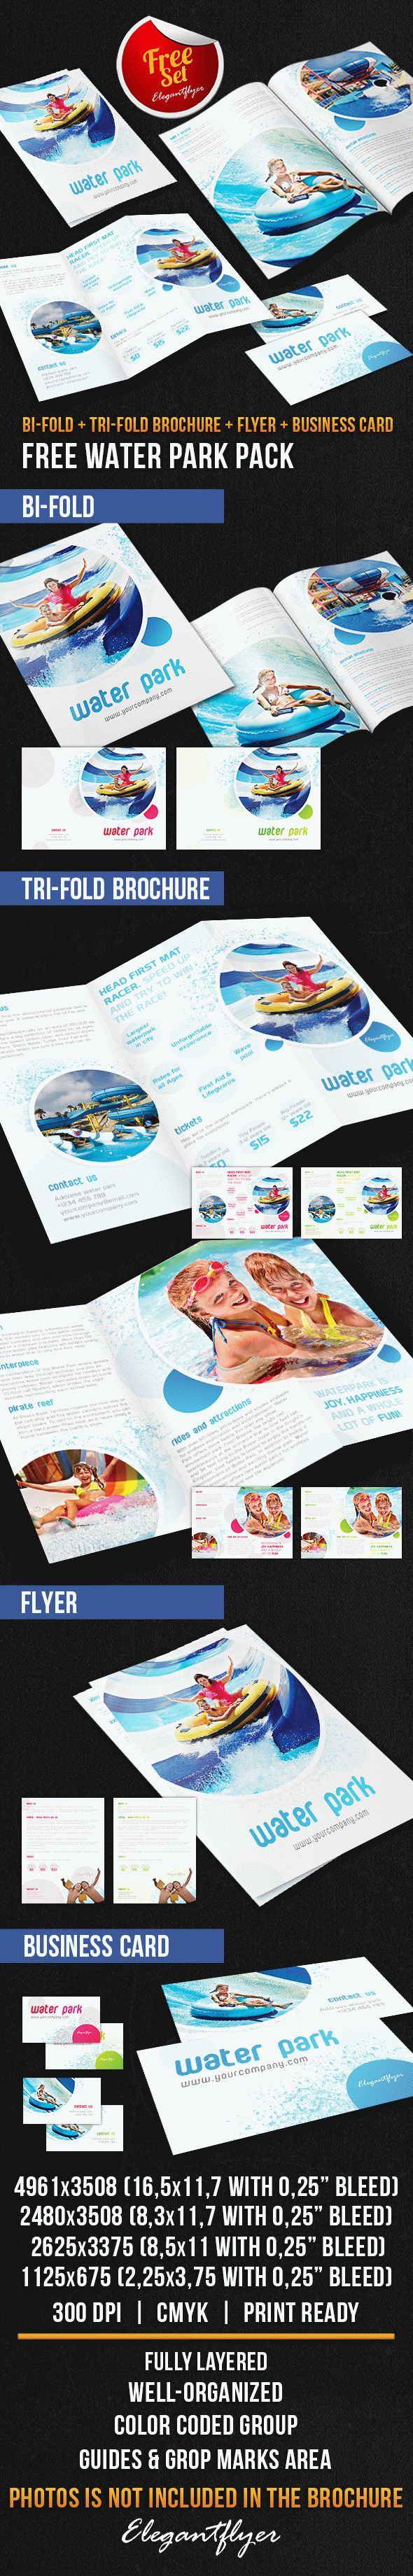 Water park brochure pack free psd template by elegantflyer for Water brochure template